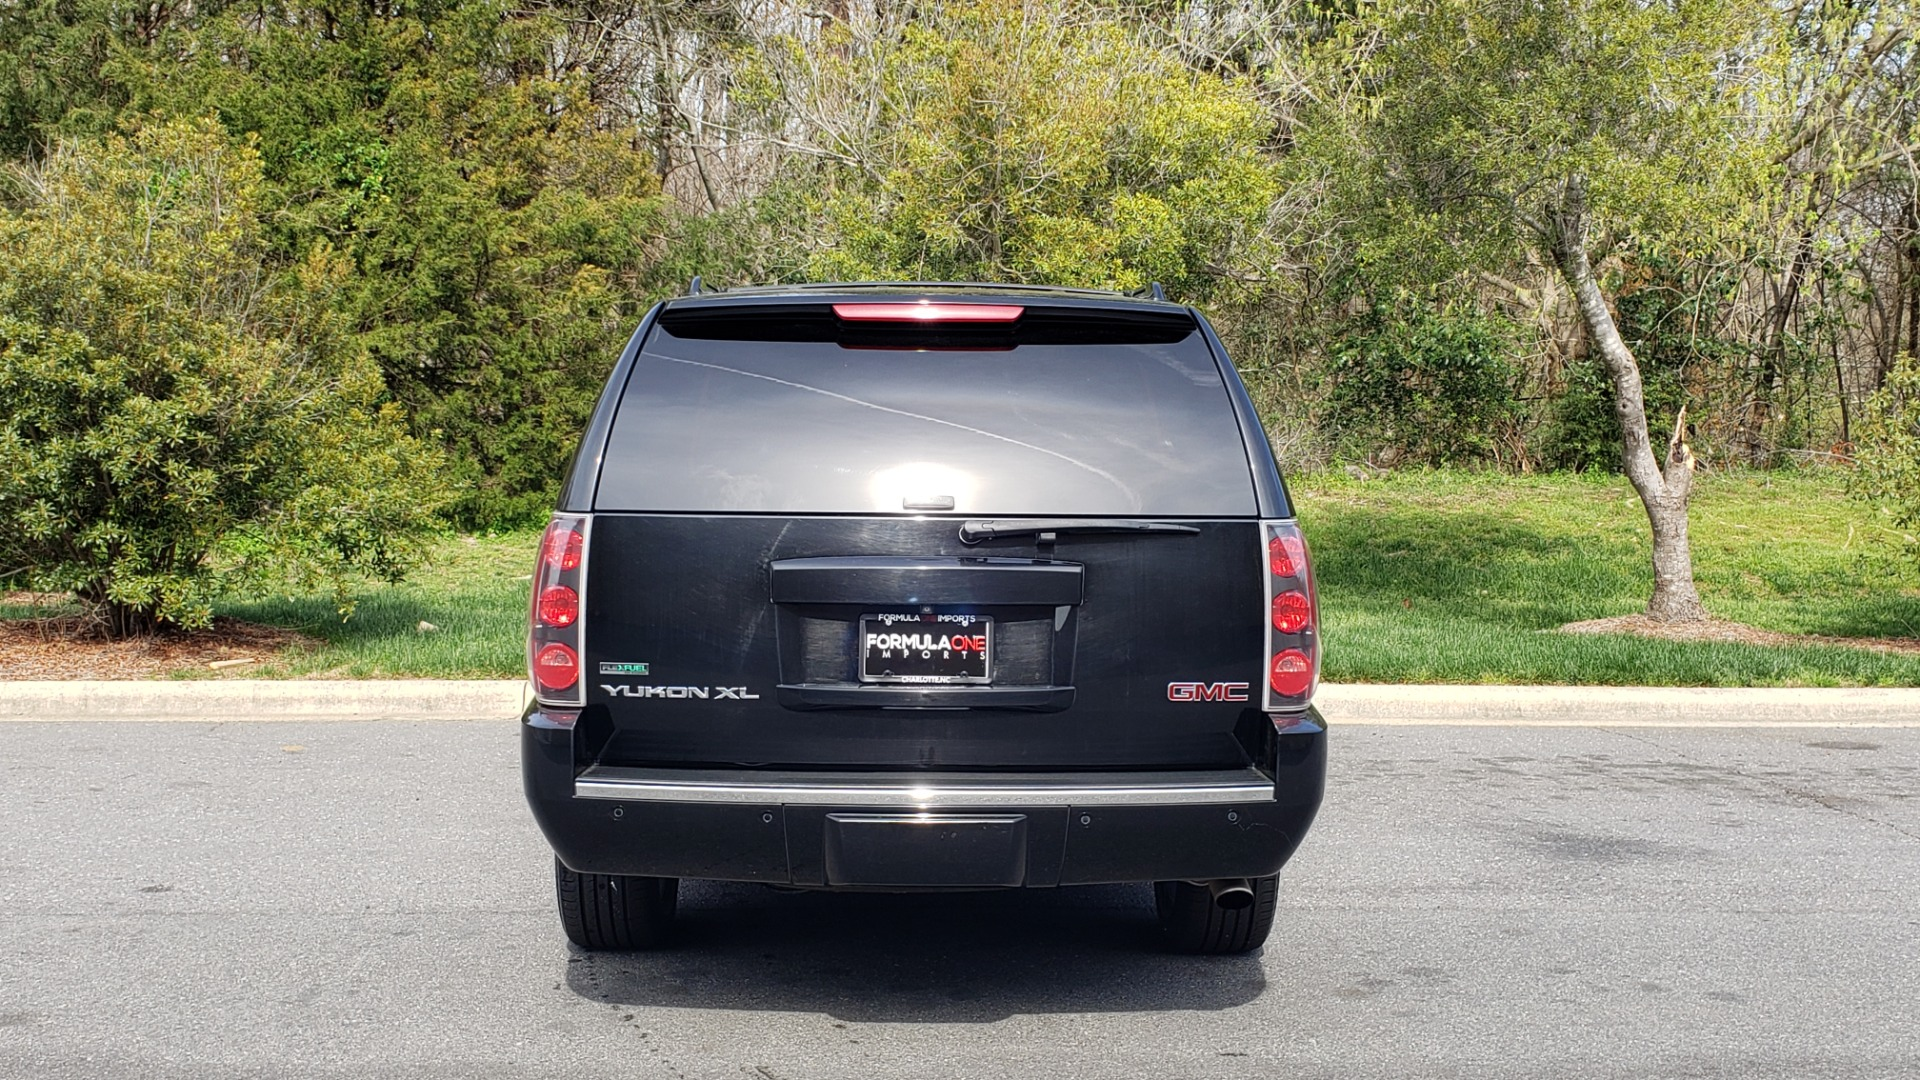 Used 2012 GMC YUKON XL DENALI AWD / NAV / SUN & ENT PKG / SUNROOF / REARVIEW / 3-ROW for sale Sold at Formula Imports in Charlotte NC 28227 25